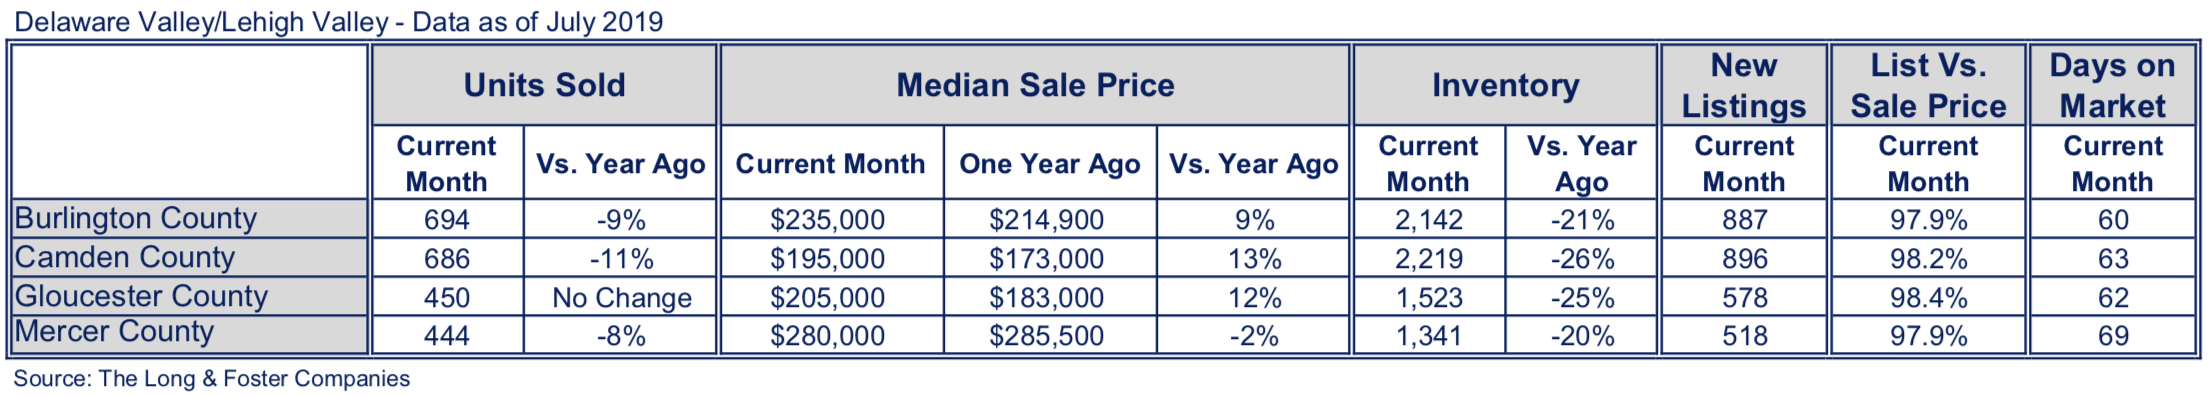 New Jersey Suburbs Market Minute Chart July 2019